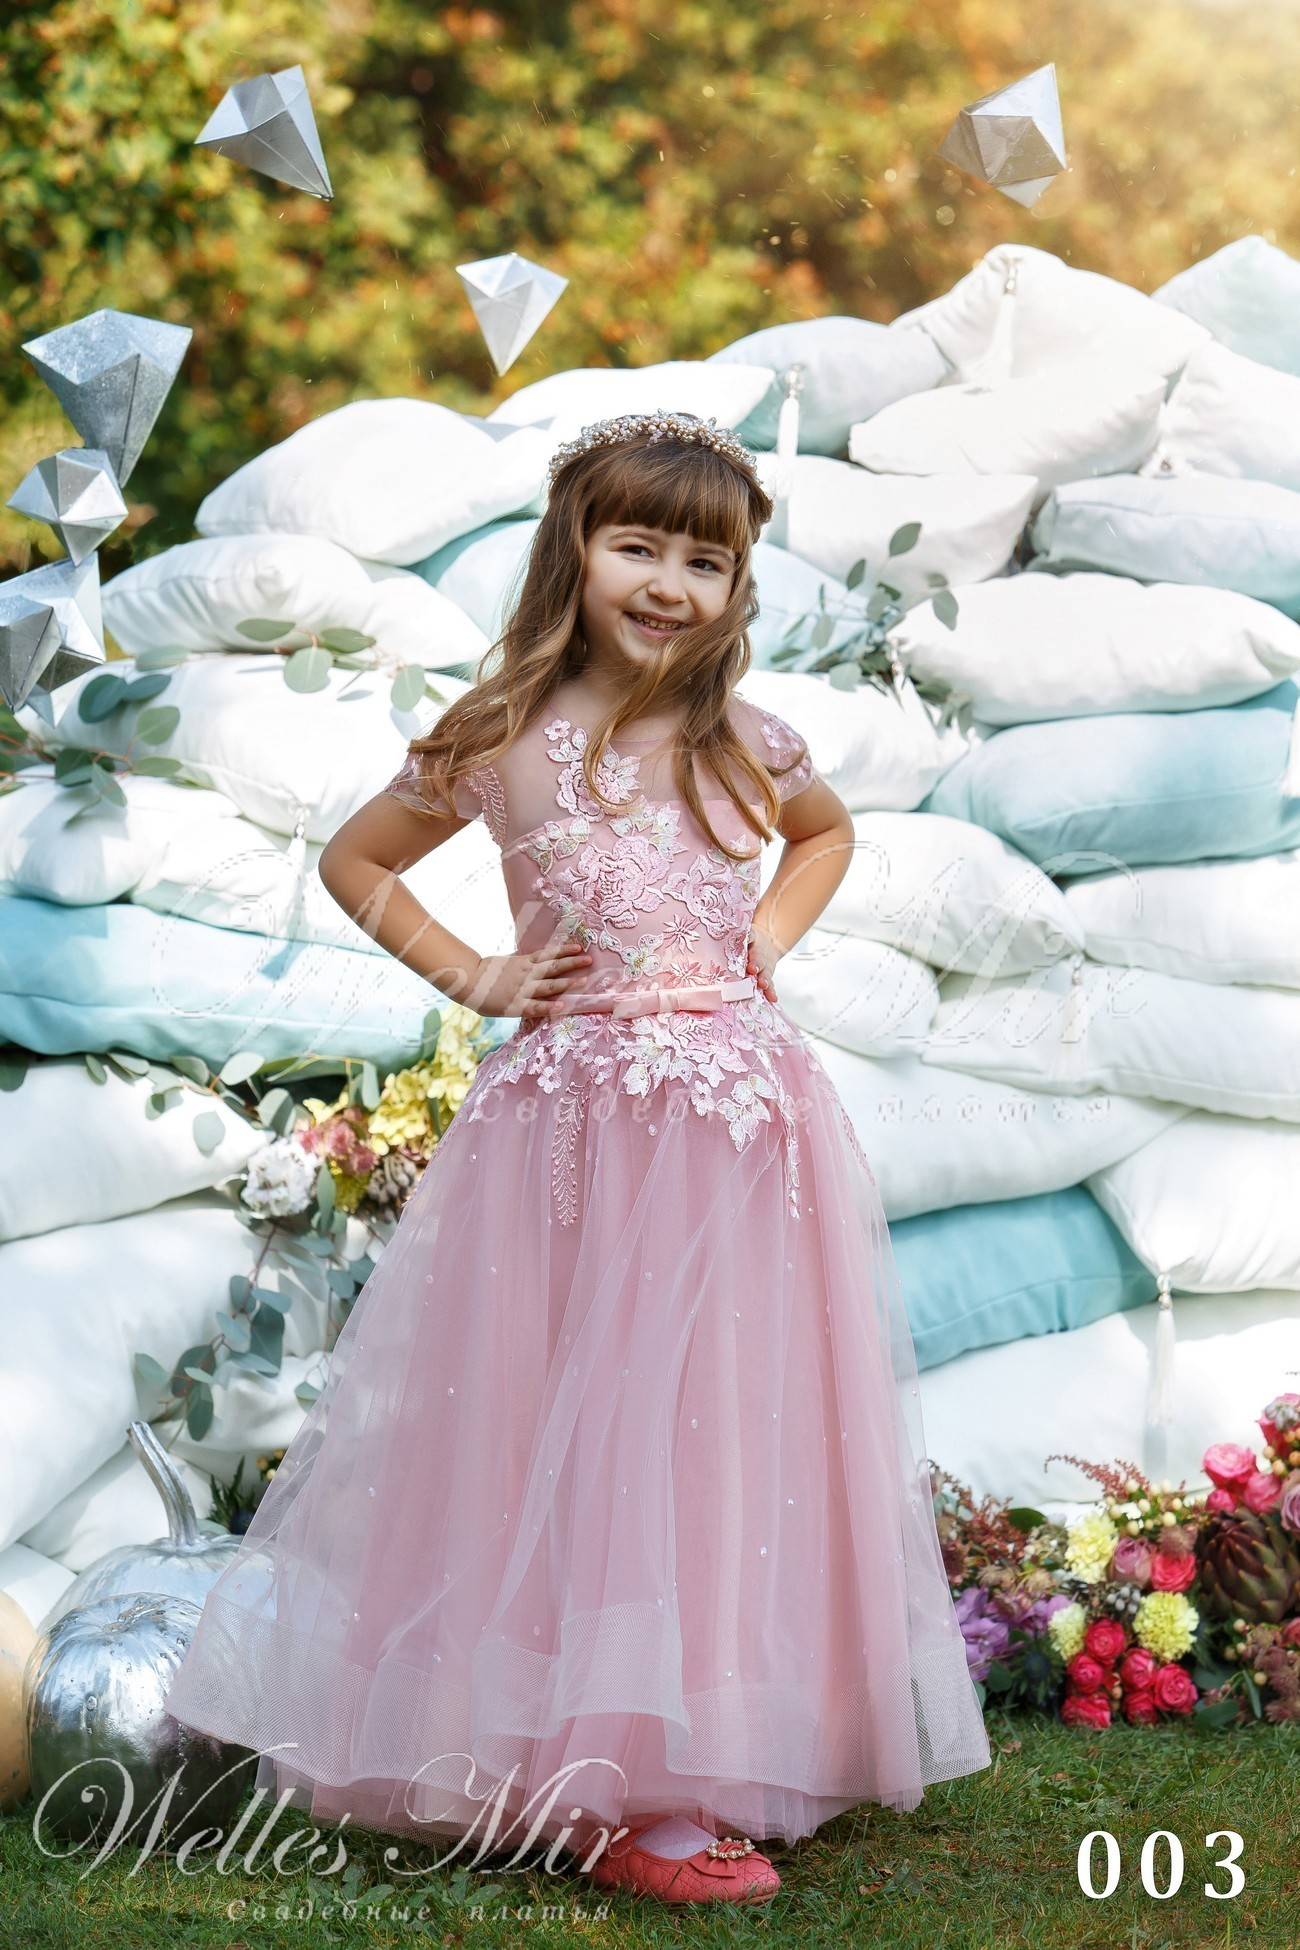 Kids Deluxe Collection 2018 - 003